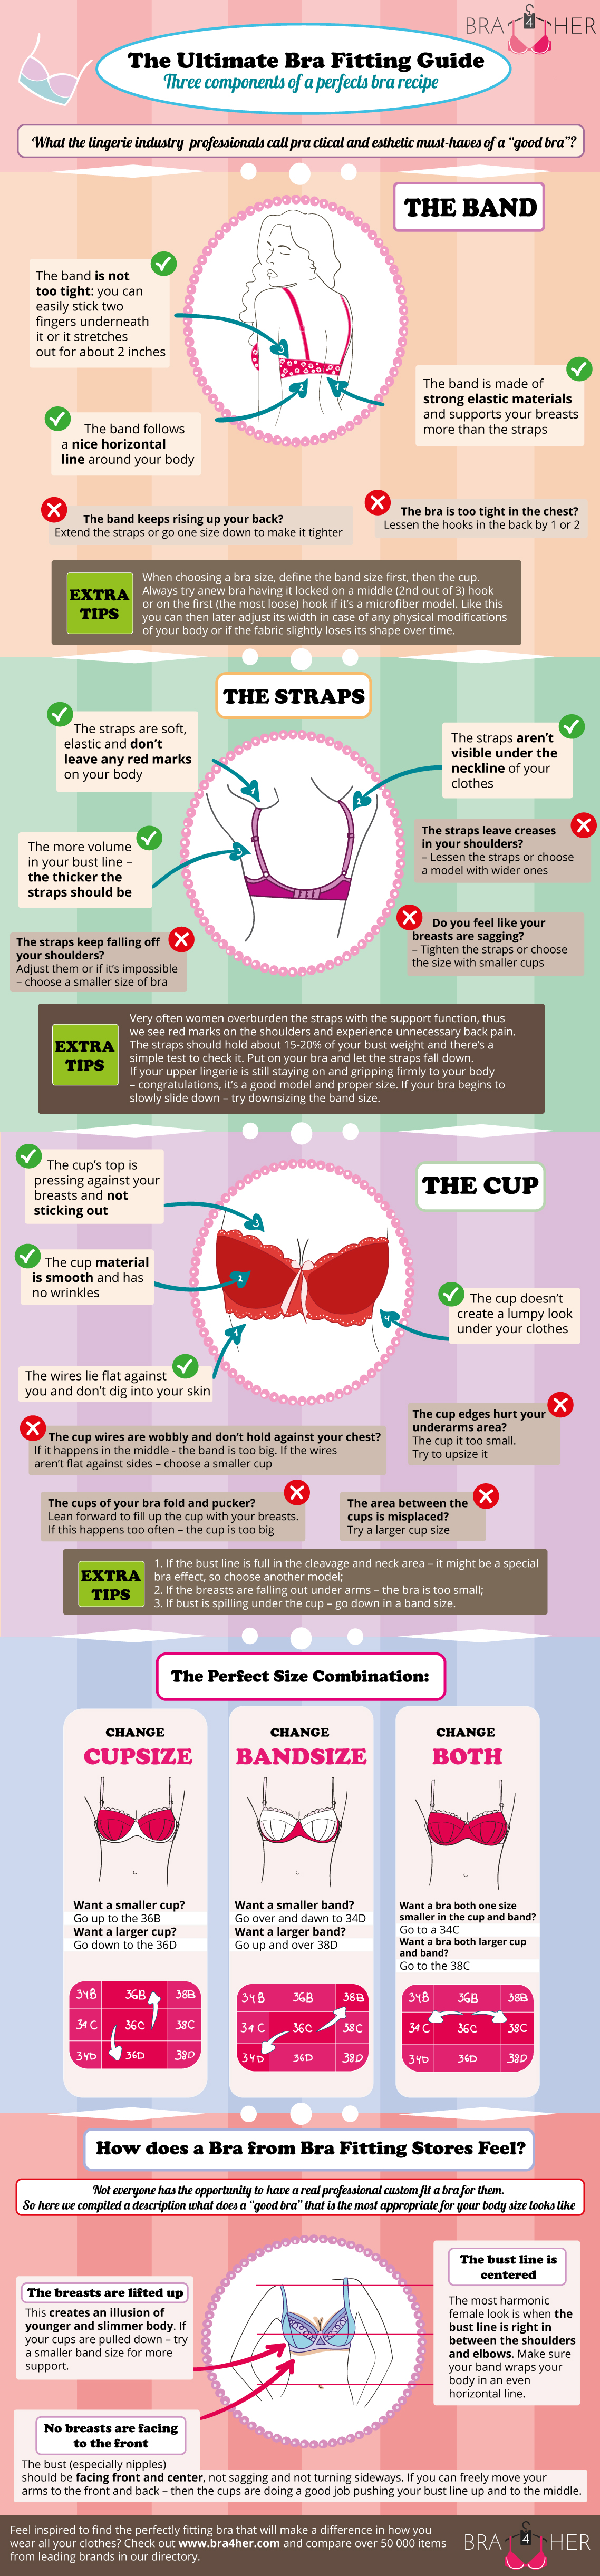 The Ultimate Bra Fitting Guide Infographic